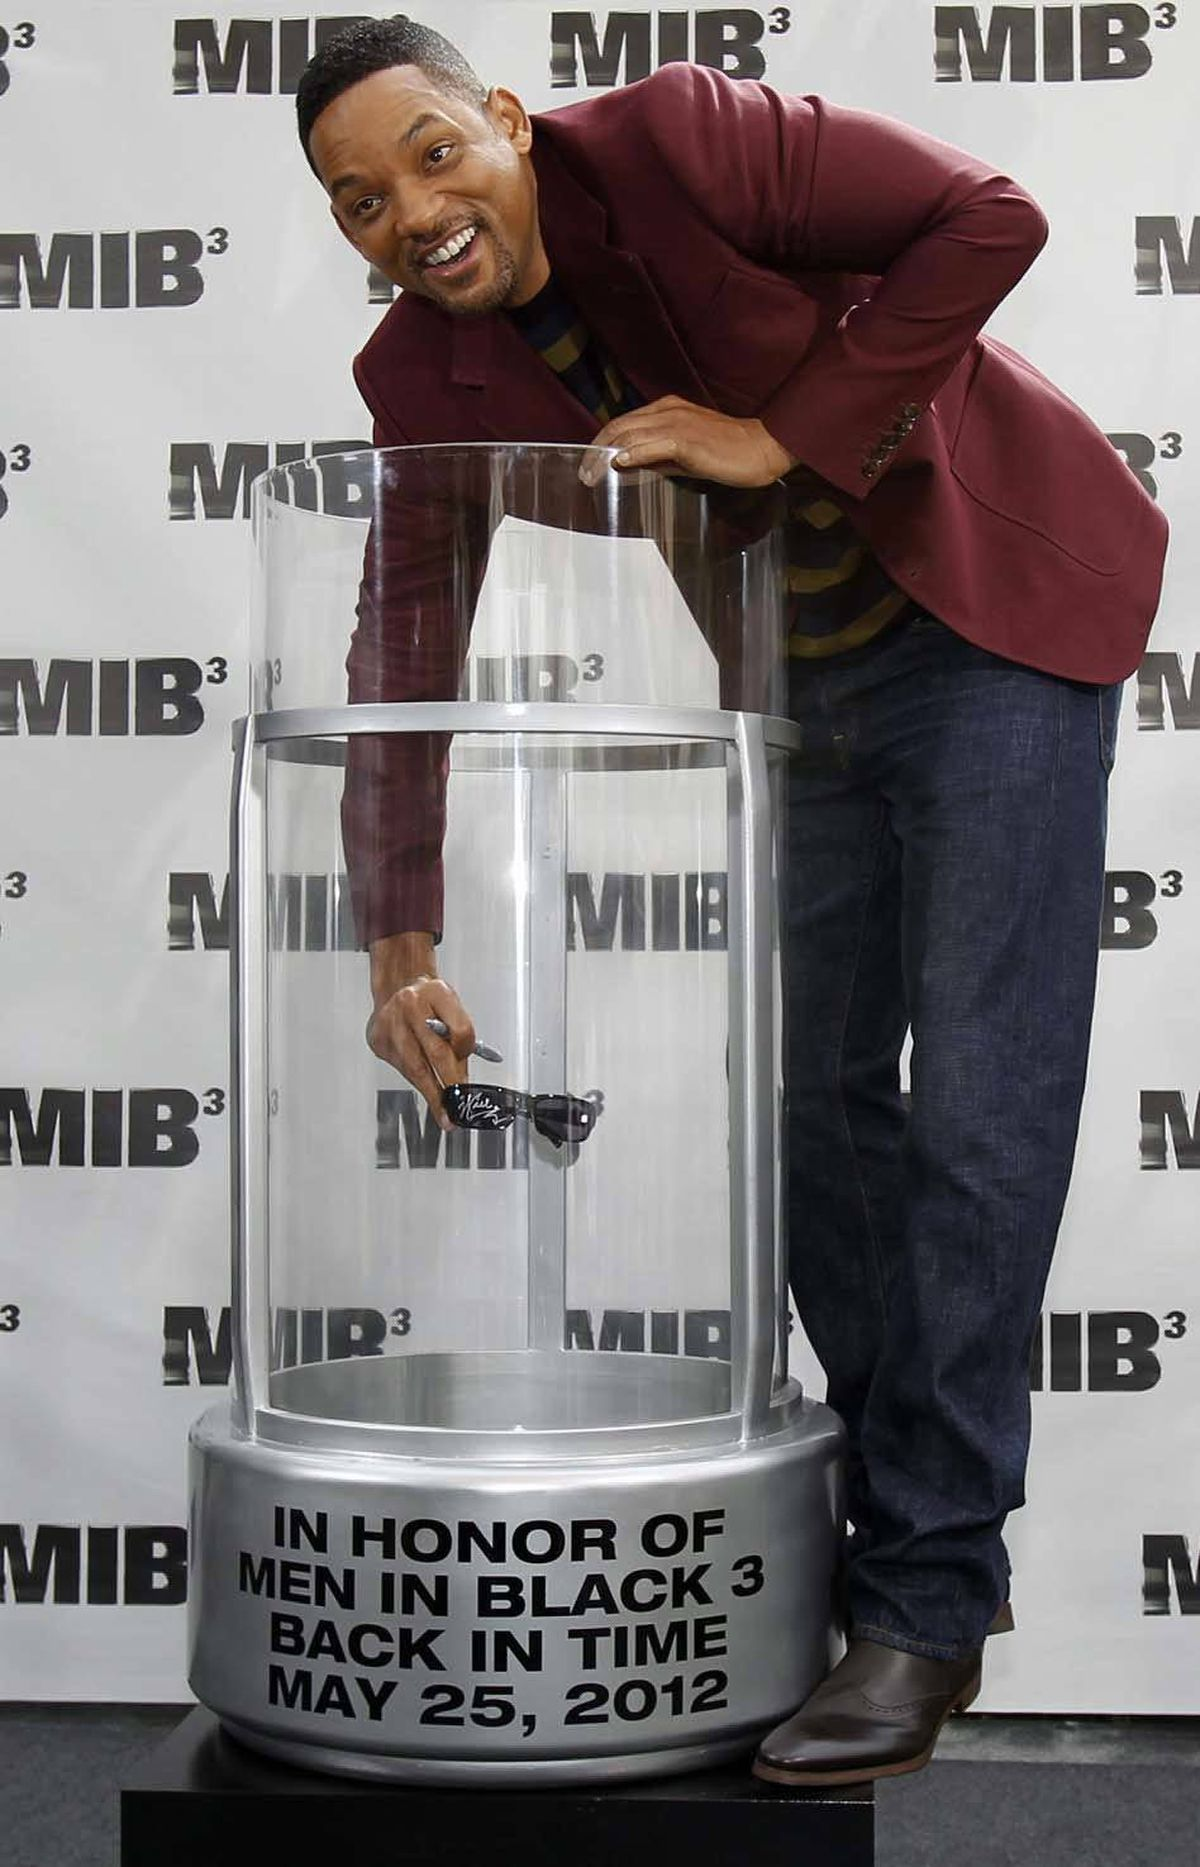 """Will Smith places a pair of autographed sunglasses in a time capsule while promoting his upcoming film """"Men in Black III"""" in Los Angeles last week. Future archeologists who unearth the time capsule in 2212 will concur that it was buried during a low point in human history that was characterized by extreme narcissim. Then they will go watch """"Men in Black LXXXIII."""""""